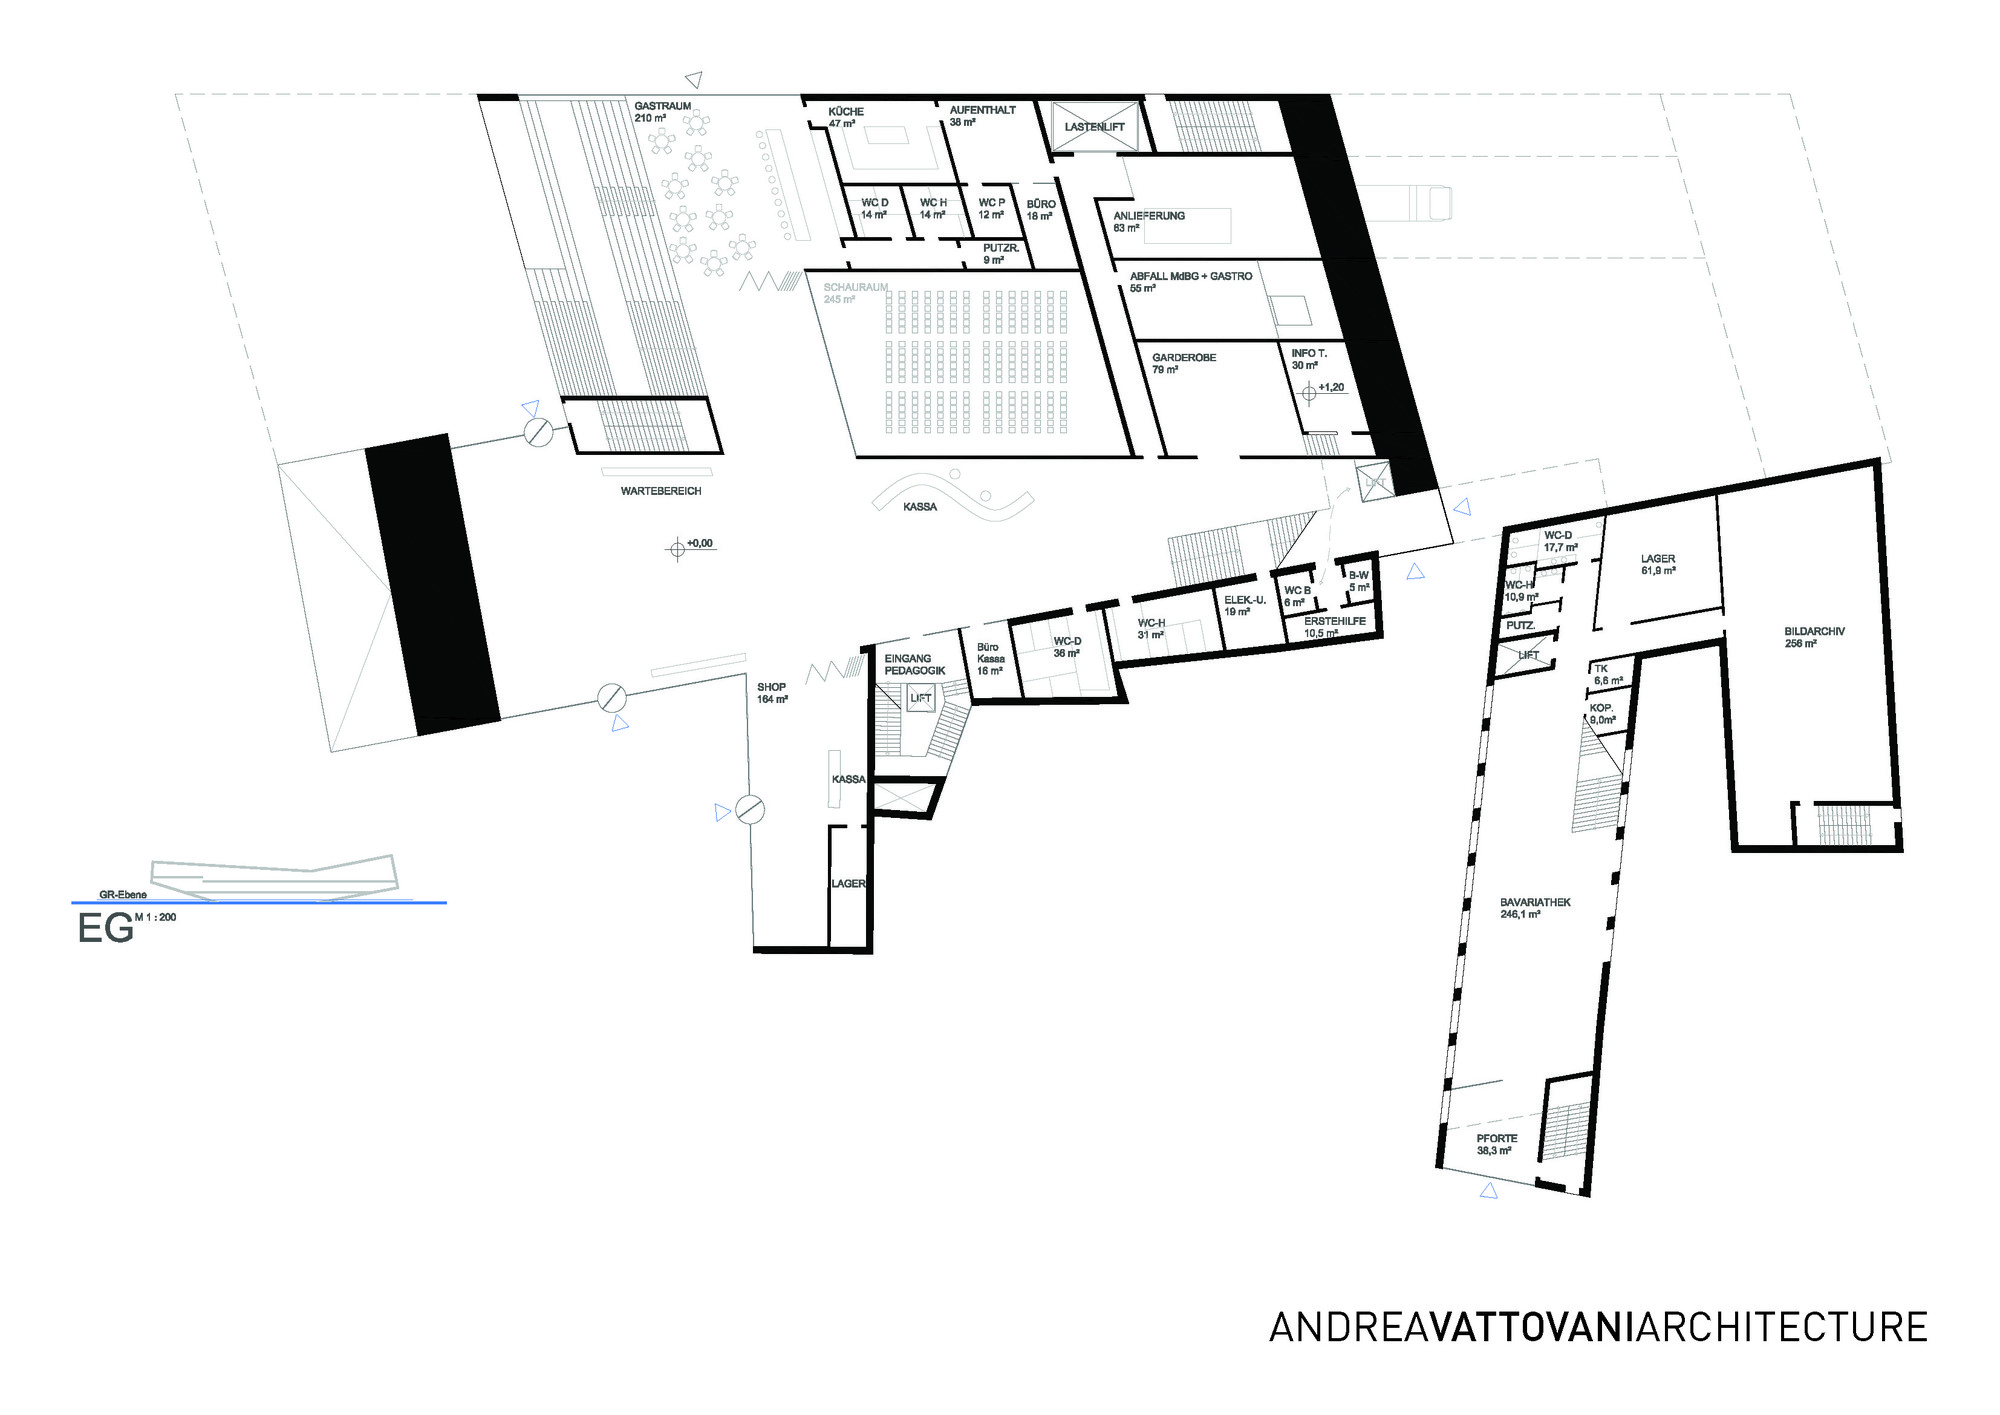 Exhibition Floor Plan besides Exhibition Floor Plan likewise 26599454019275732 also Draw House Plans Indoor Spaces together with Empire Builds 20 X 30 Custom Trade Show Rental For A Finance  pan. on exhibition booth design plans